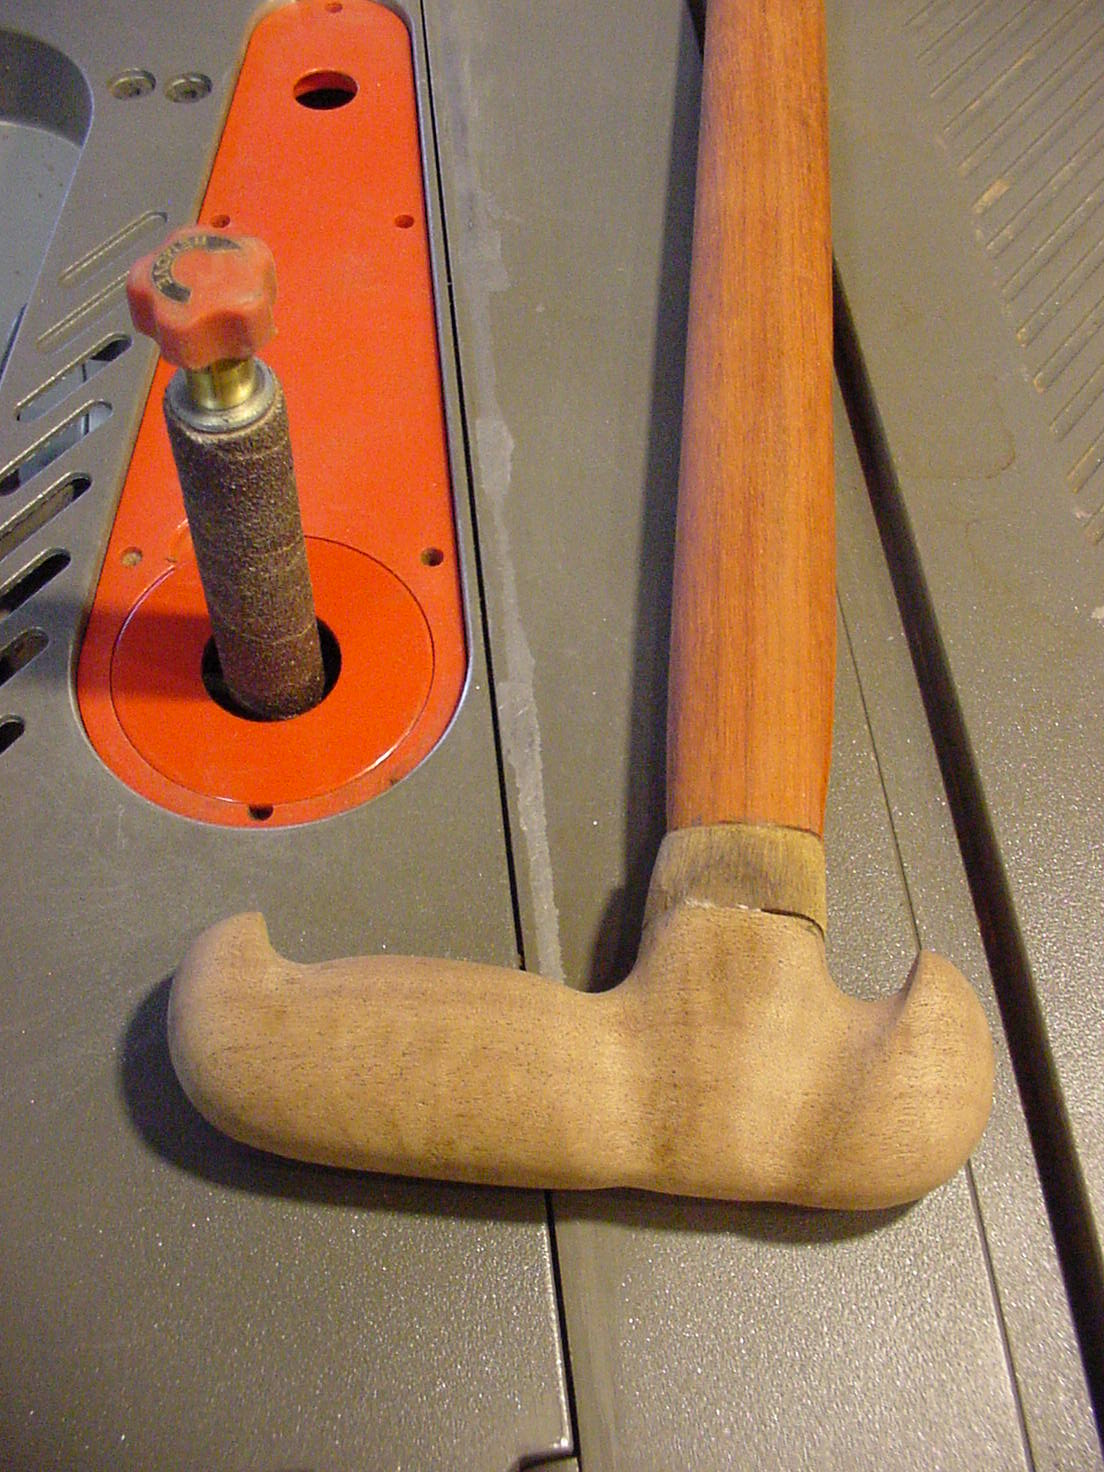 Picture of Assembling the Cane.